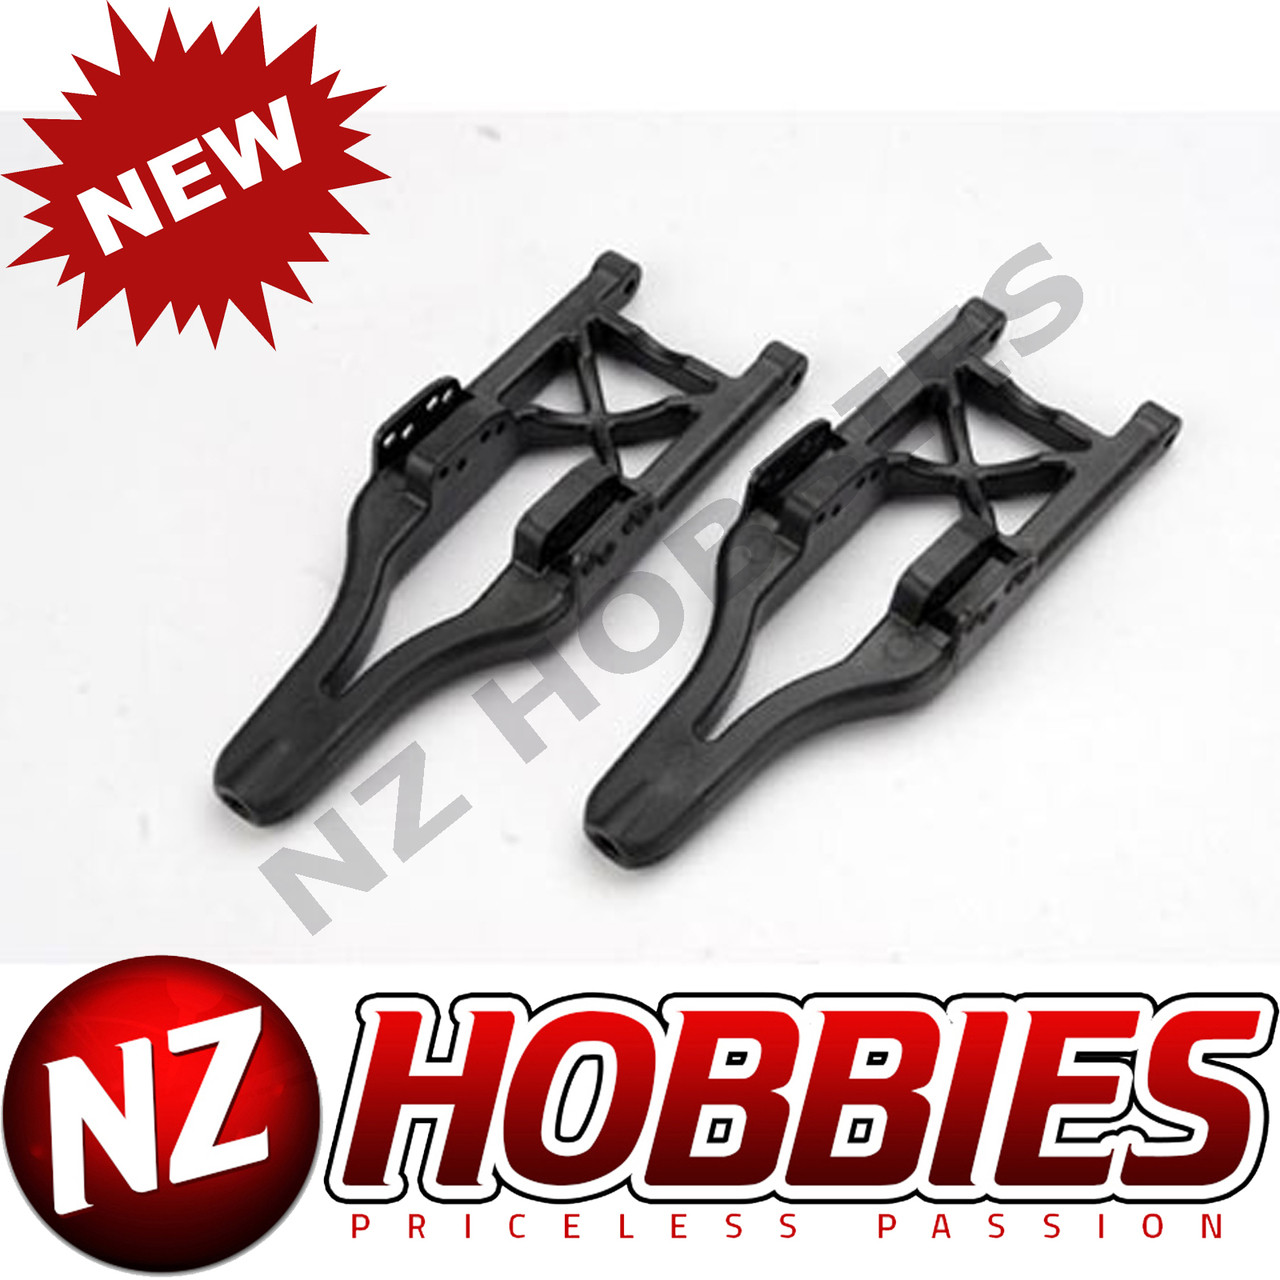 2 5132r lower Traxxas Suspension Arms